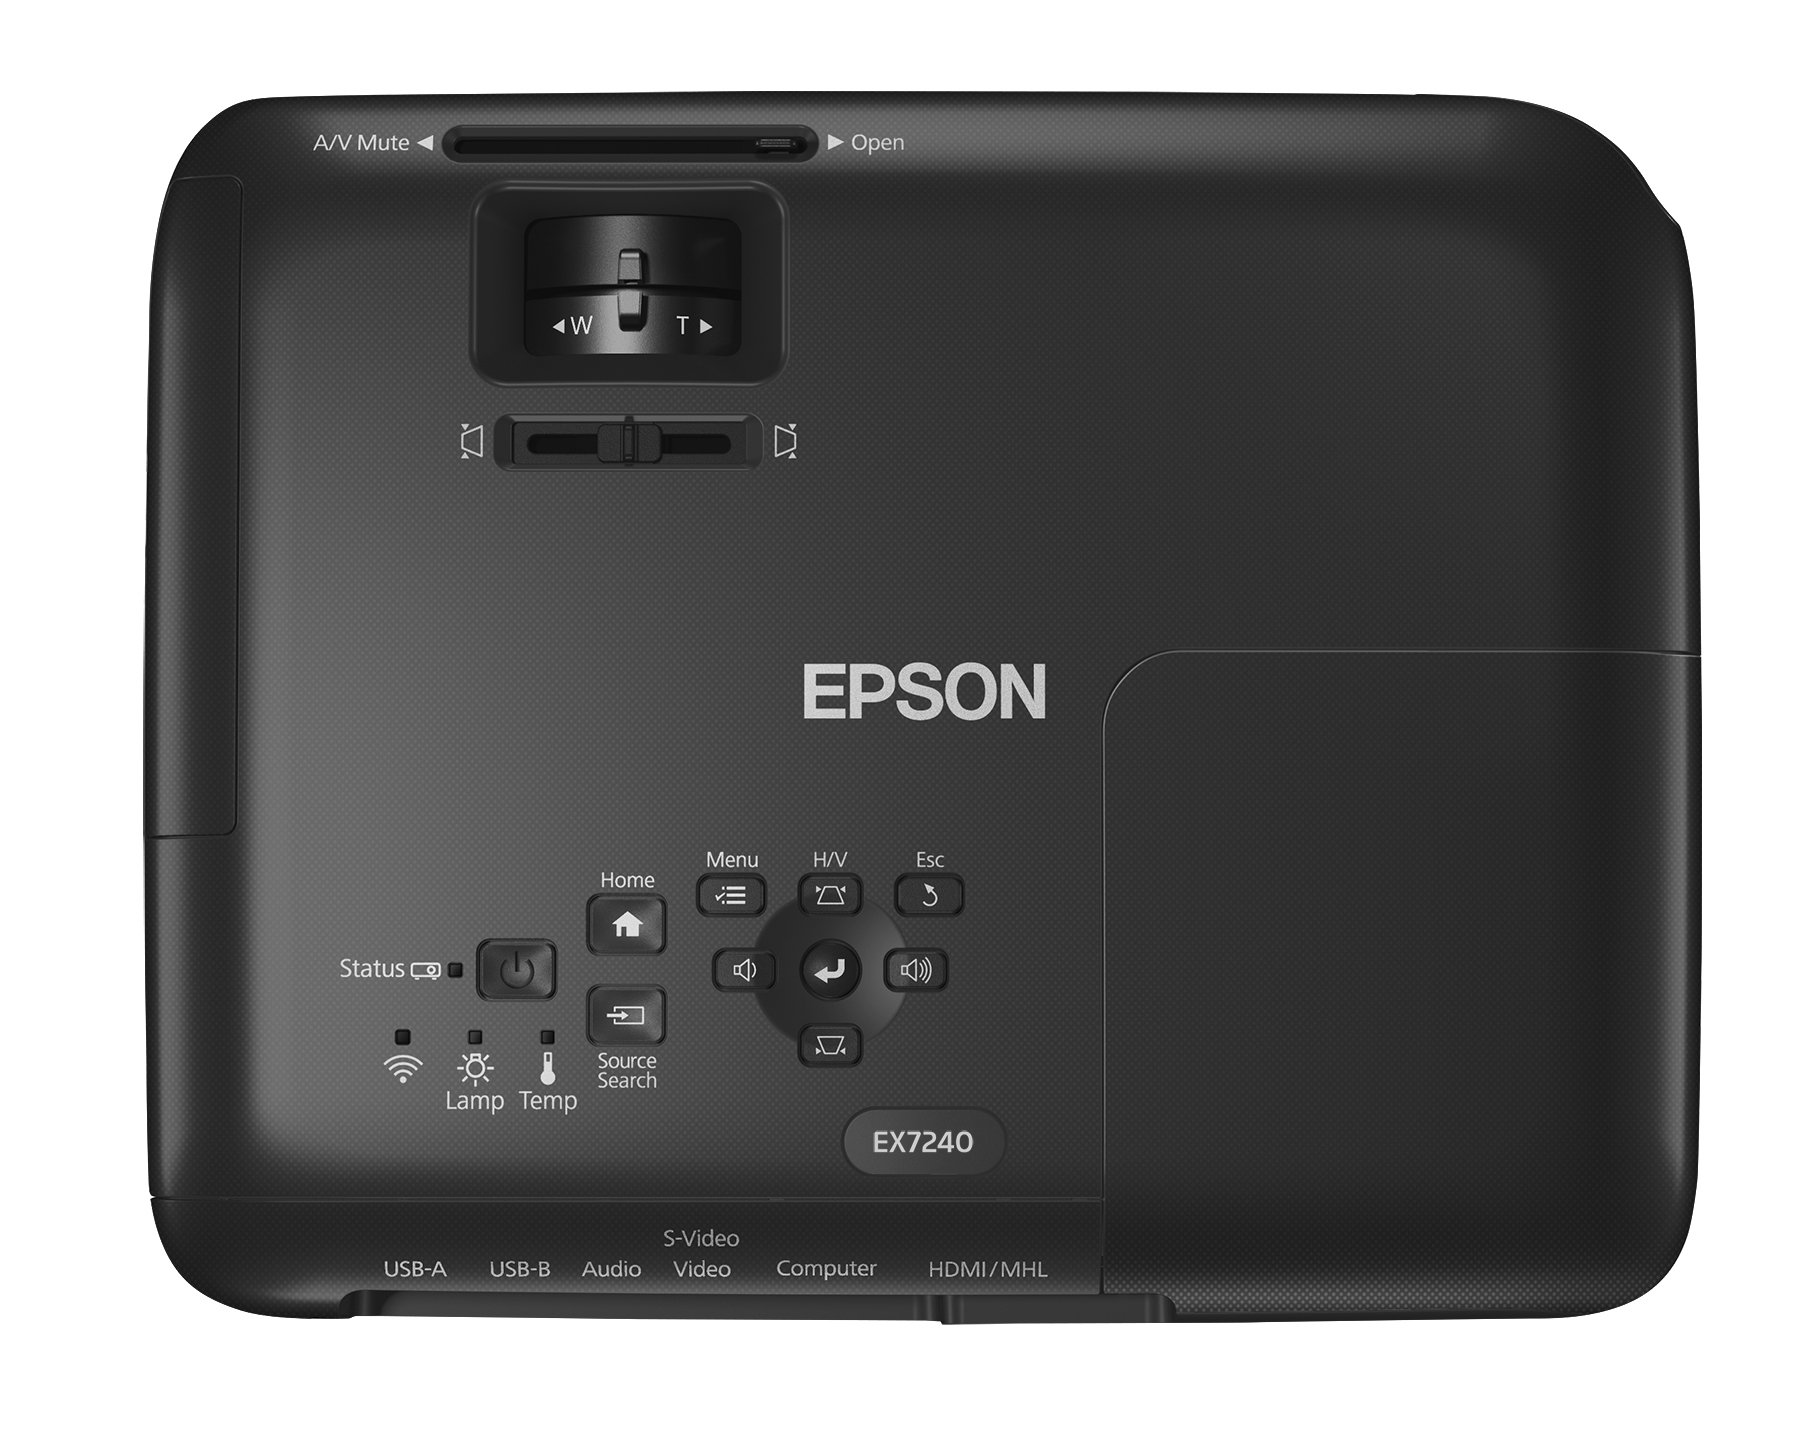 Epson EX7240 Pro WXGA 3LCD Projector Pro Wireless, 3200 Lumens Color Brightness by Epson (Image #5)